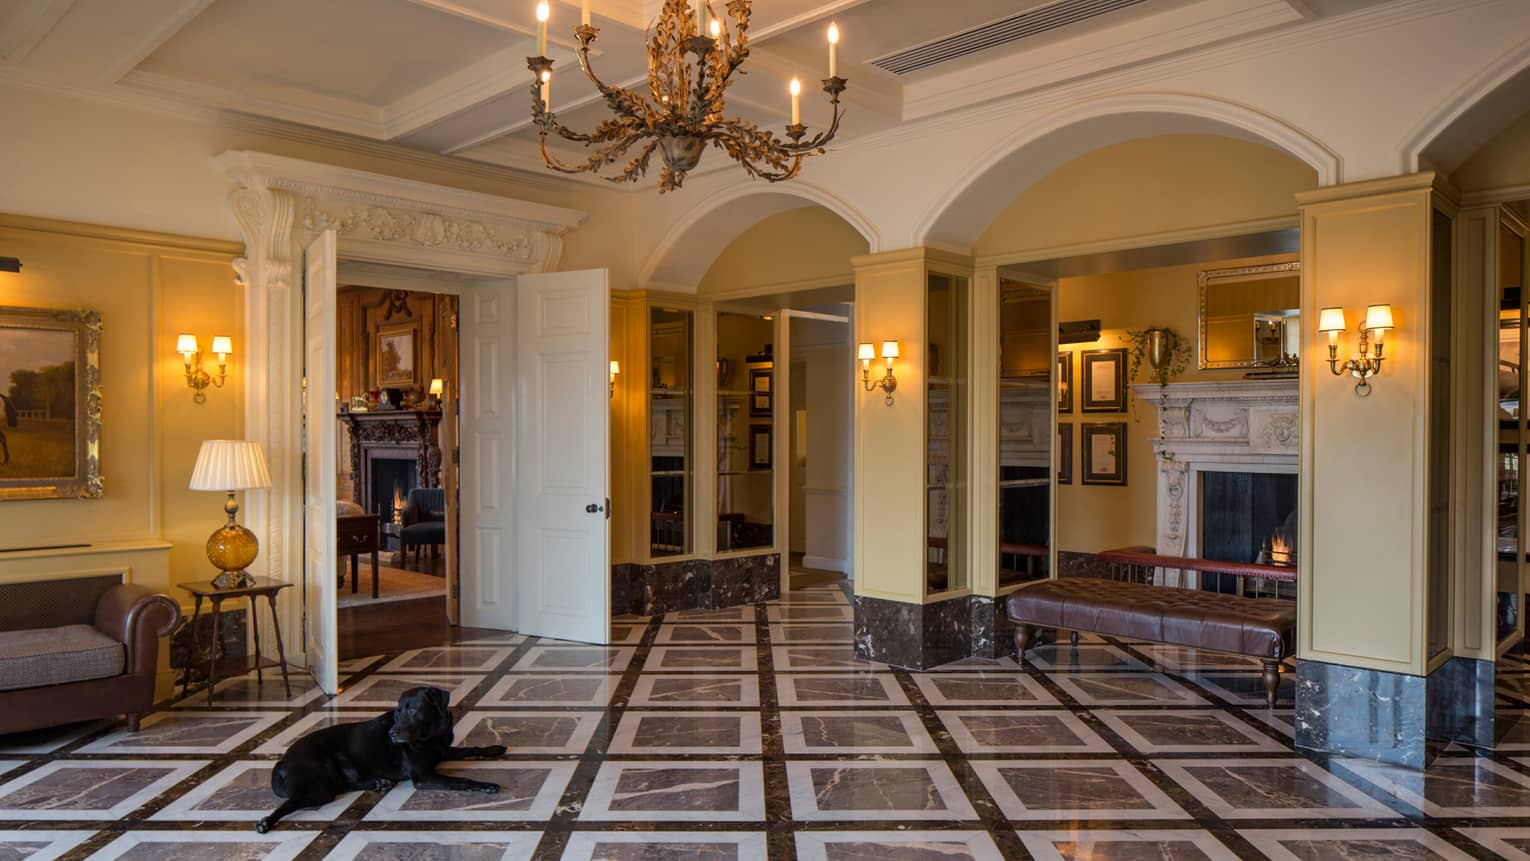 Black dog lies on marble floors in elegant hotel lobby with arched walls, brown benches